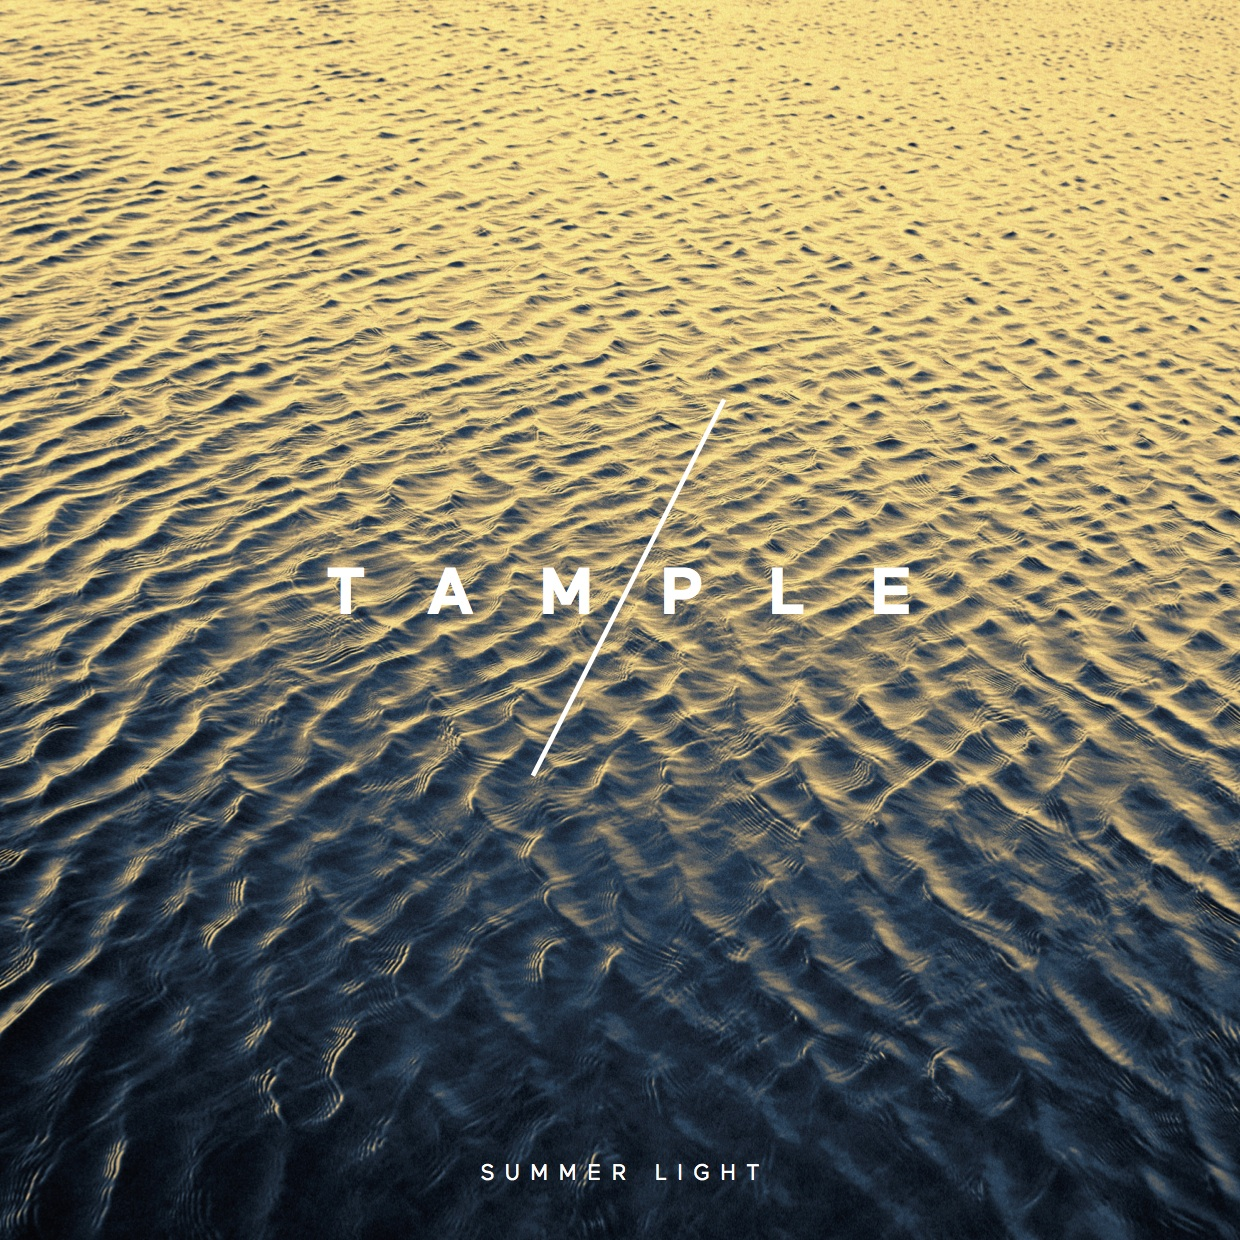 Tample_SummerLight_Cover